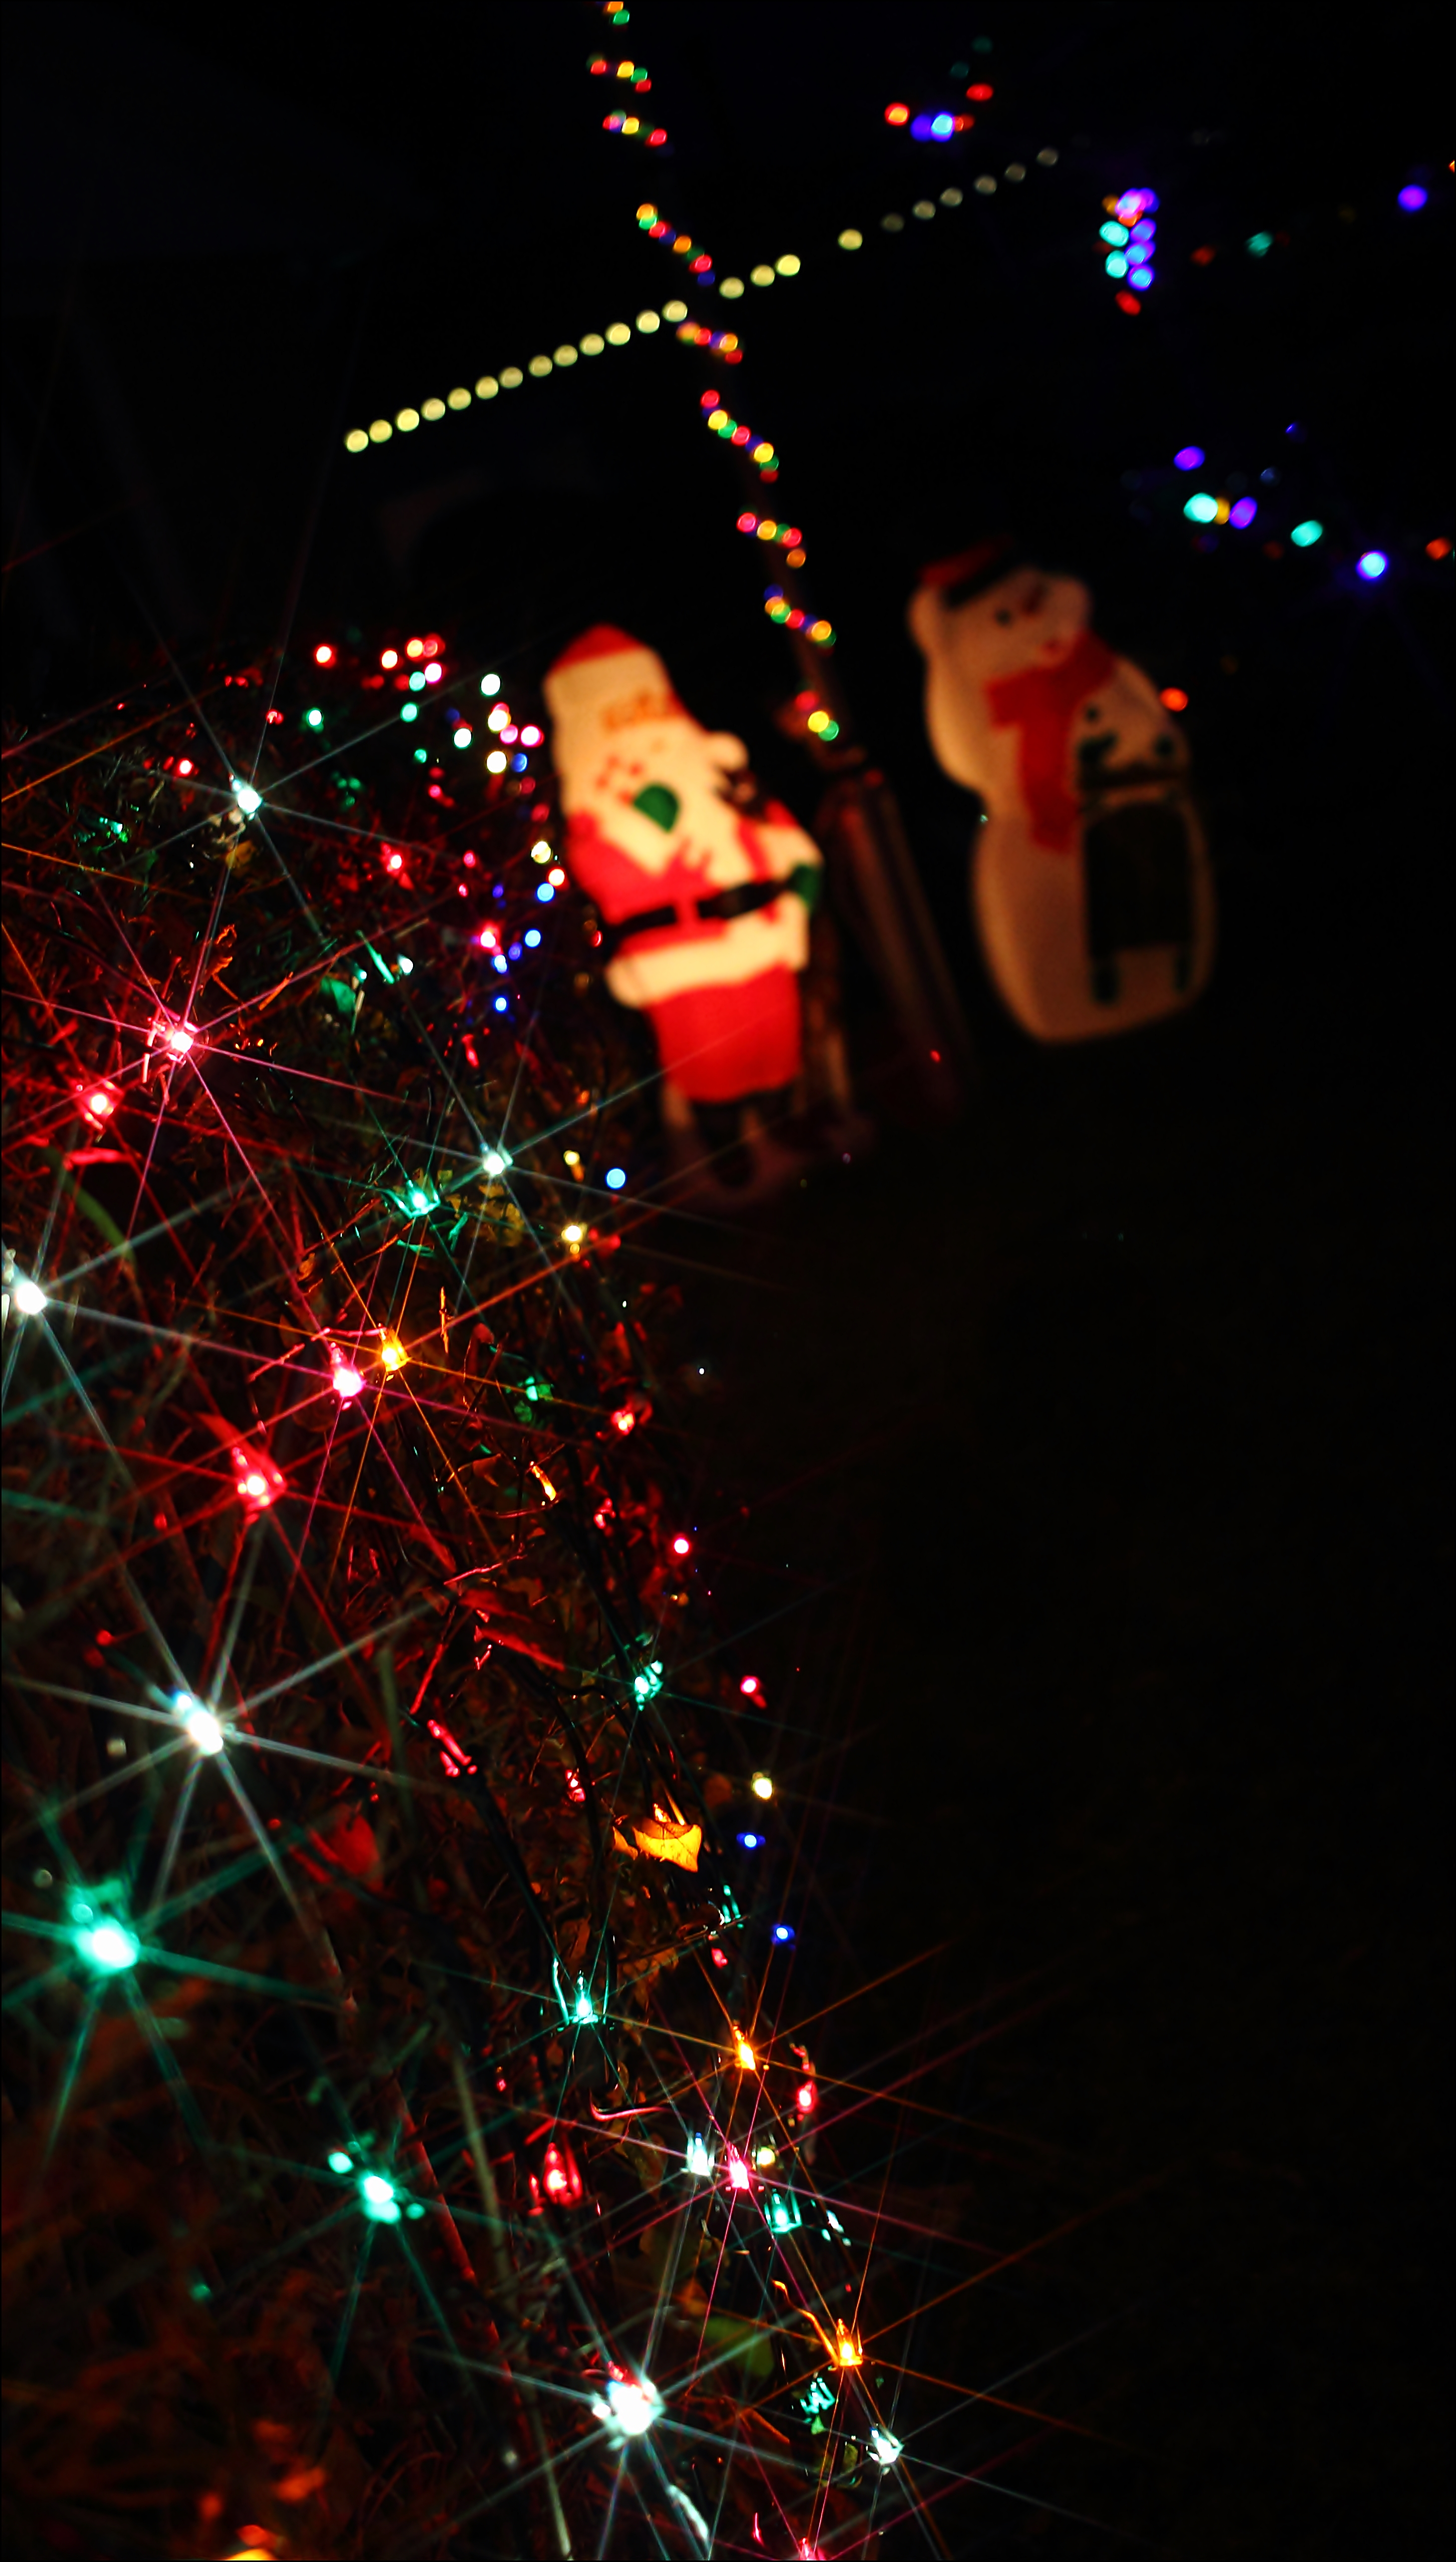 Putting Up The Christmas Lights: We Had The Warmest Temps. In Canada Today. christmas, canon, lights, 60d, warmesttemps. buy photo